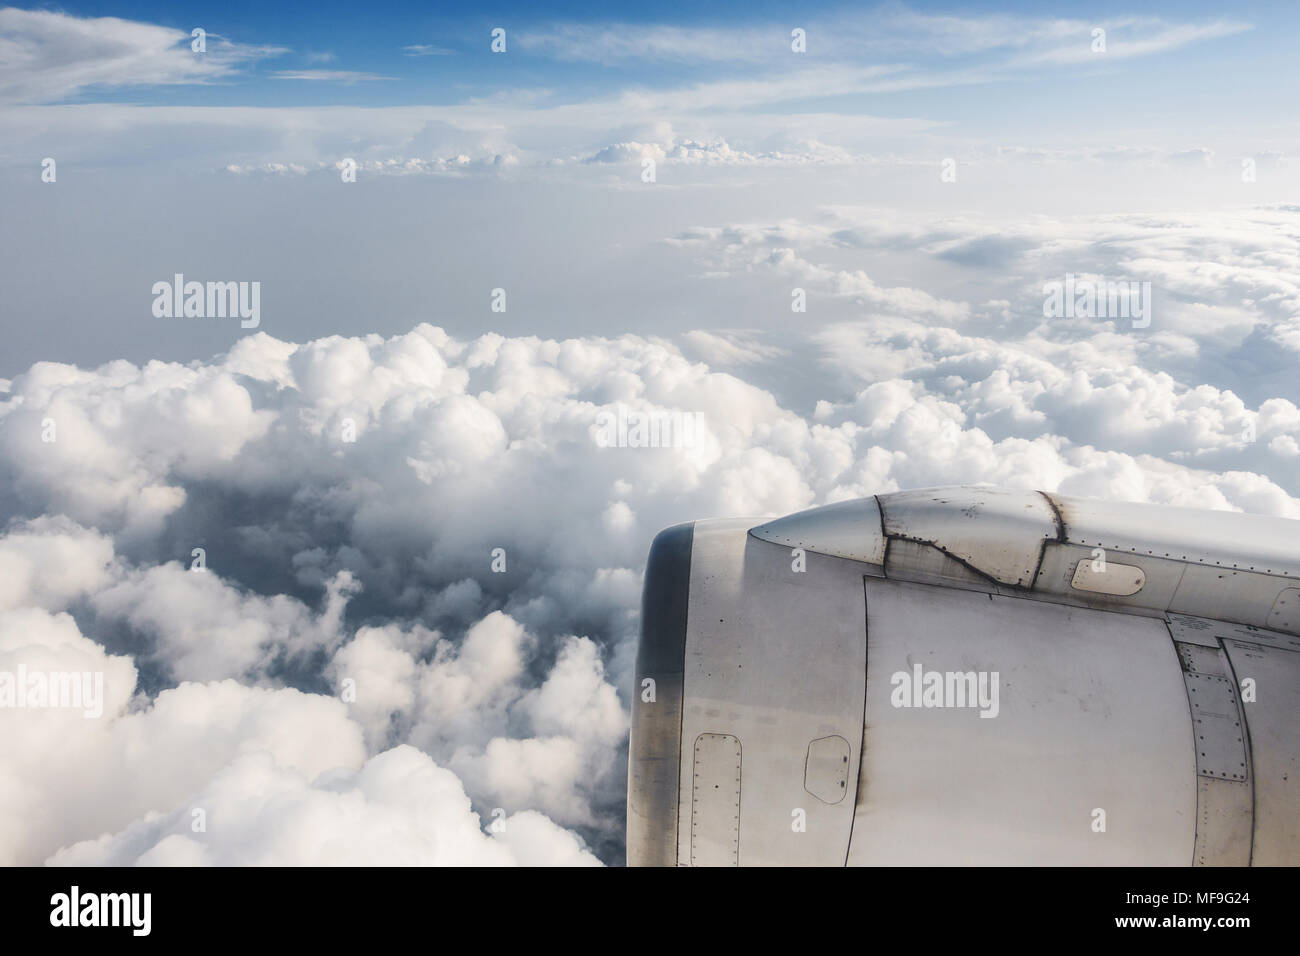 Slightly dirty airliner jet engine and cloudy sky, airplane in flight - Stock Image